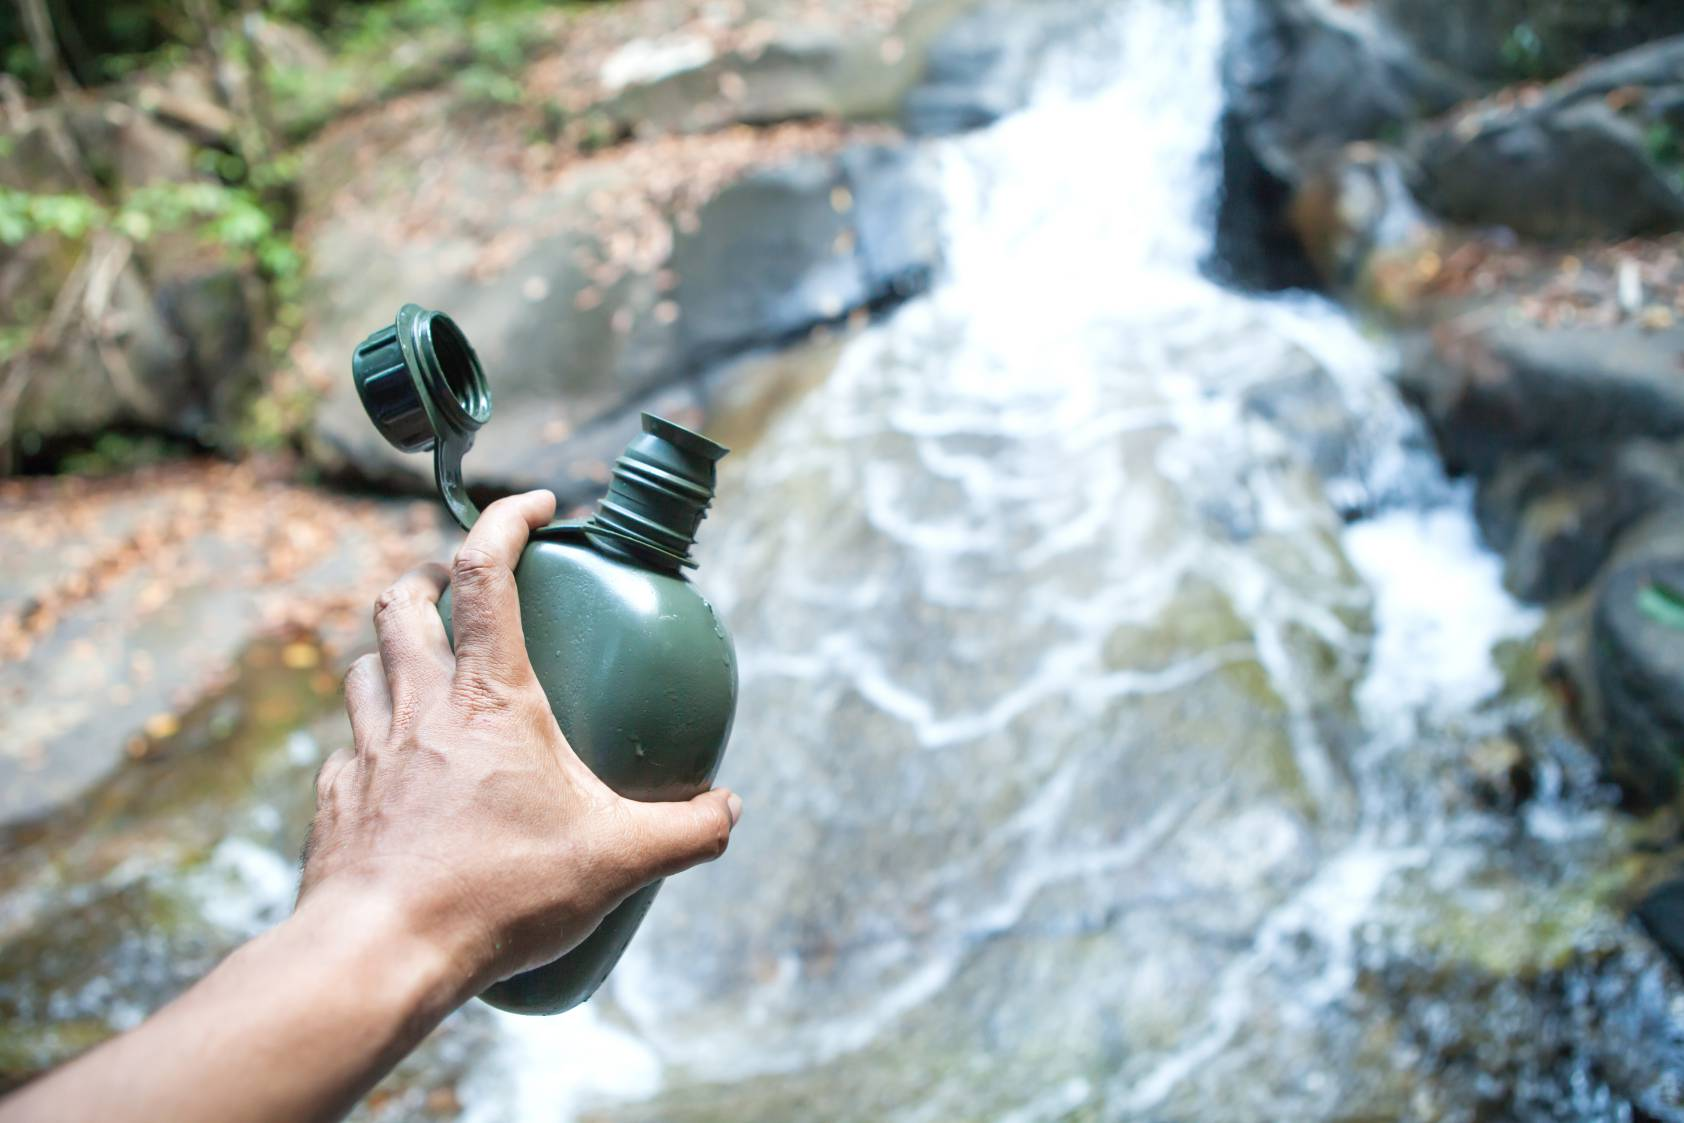 A man looking to fill up his green coloured canteen in a flowing stream of river water